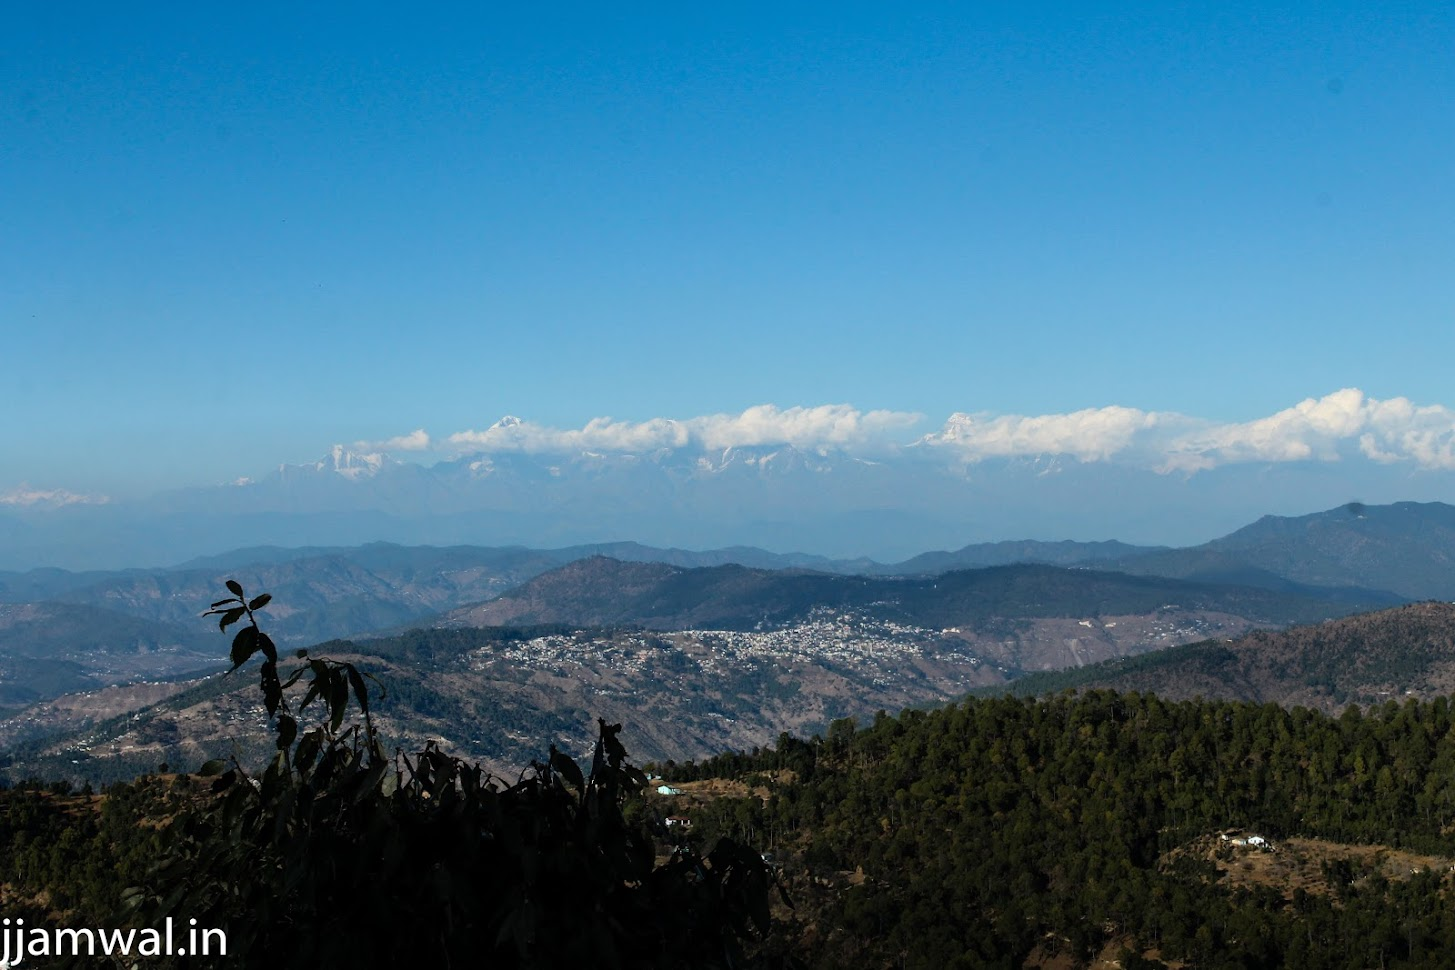 View from gusht house in Sitla near Mukteshwar